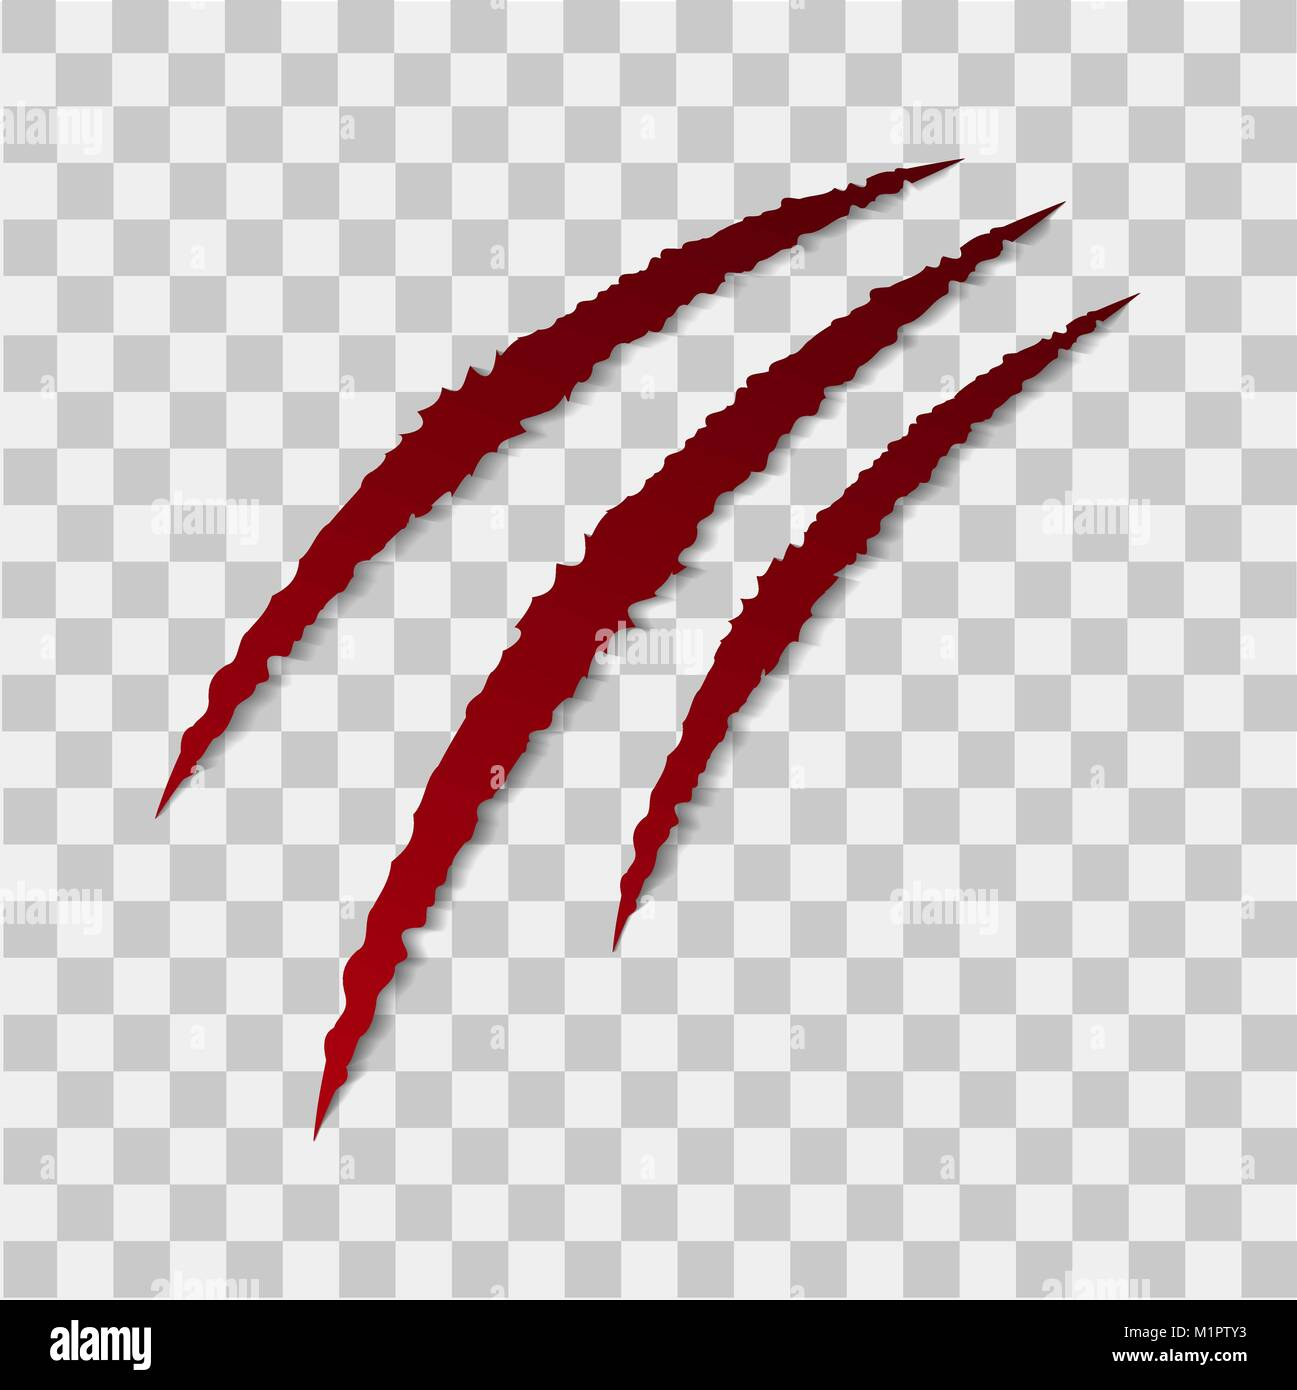 Dripping Blood On Transparent Background Vector Stock Vector Image Art Alamy Improved blood texture detail and increased resolution from 512 to 2048. https www alamy com stock photo dripping blood on transparent background vector 173220855 html